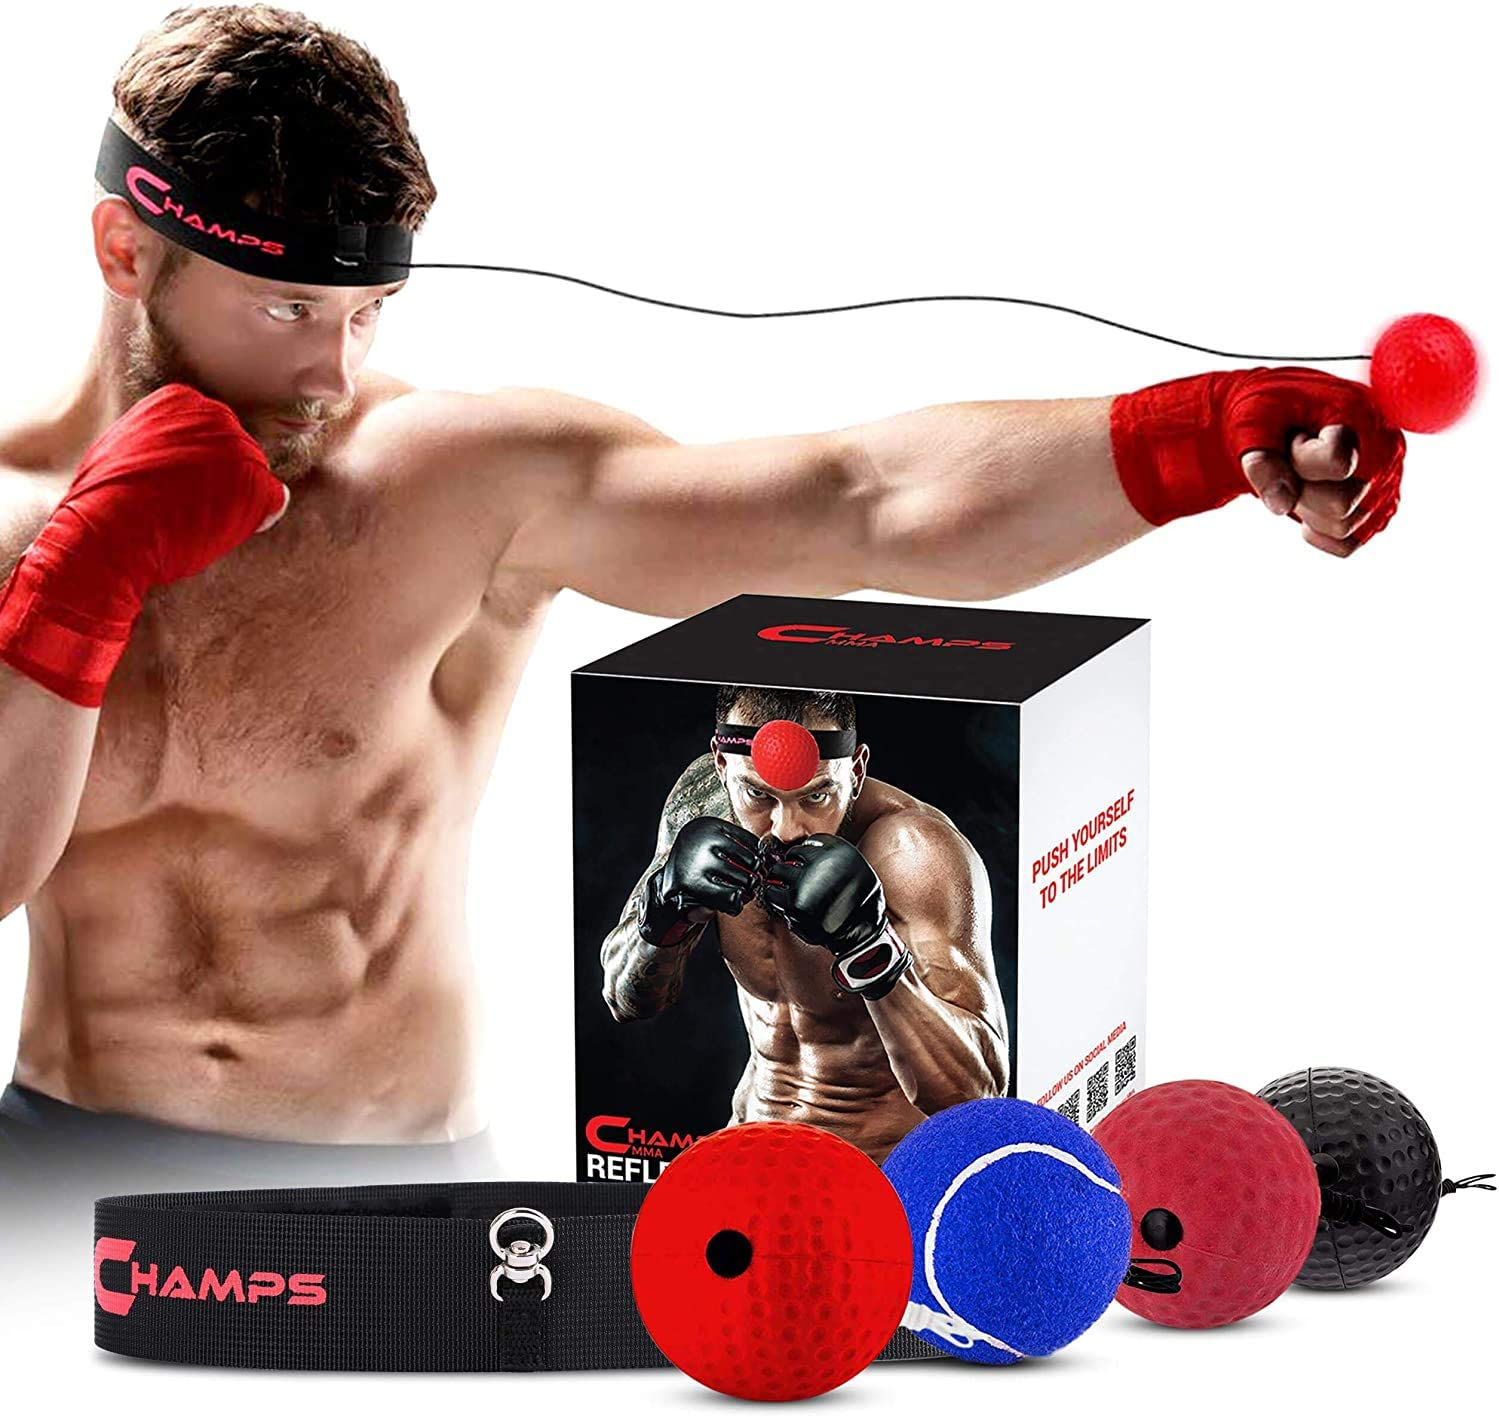 Boxing Reflex Ball Set - 4 Difficulty Levels Great for Reaction Speed and Hand Eye Coordination Training Boxing Equipment Fight Speed, Boxing Gear, Punching Ball Reflex Bag Alternative (Set of 4) : Sports & Outdoors